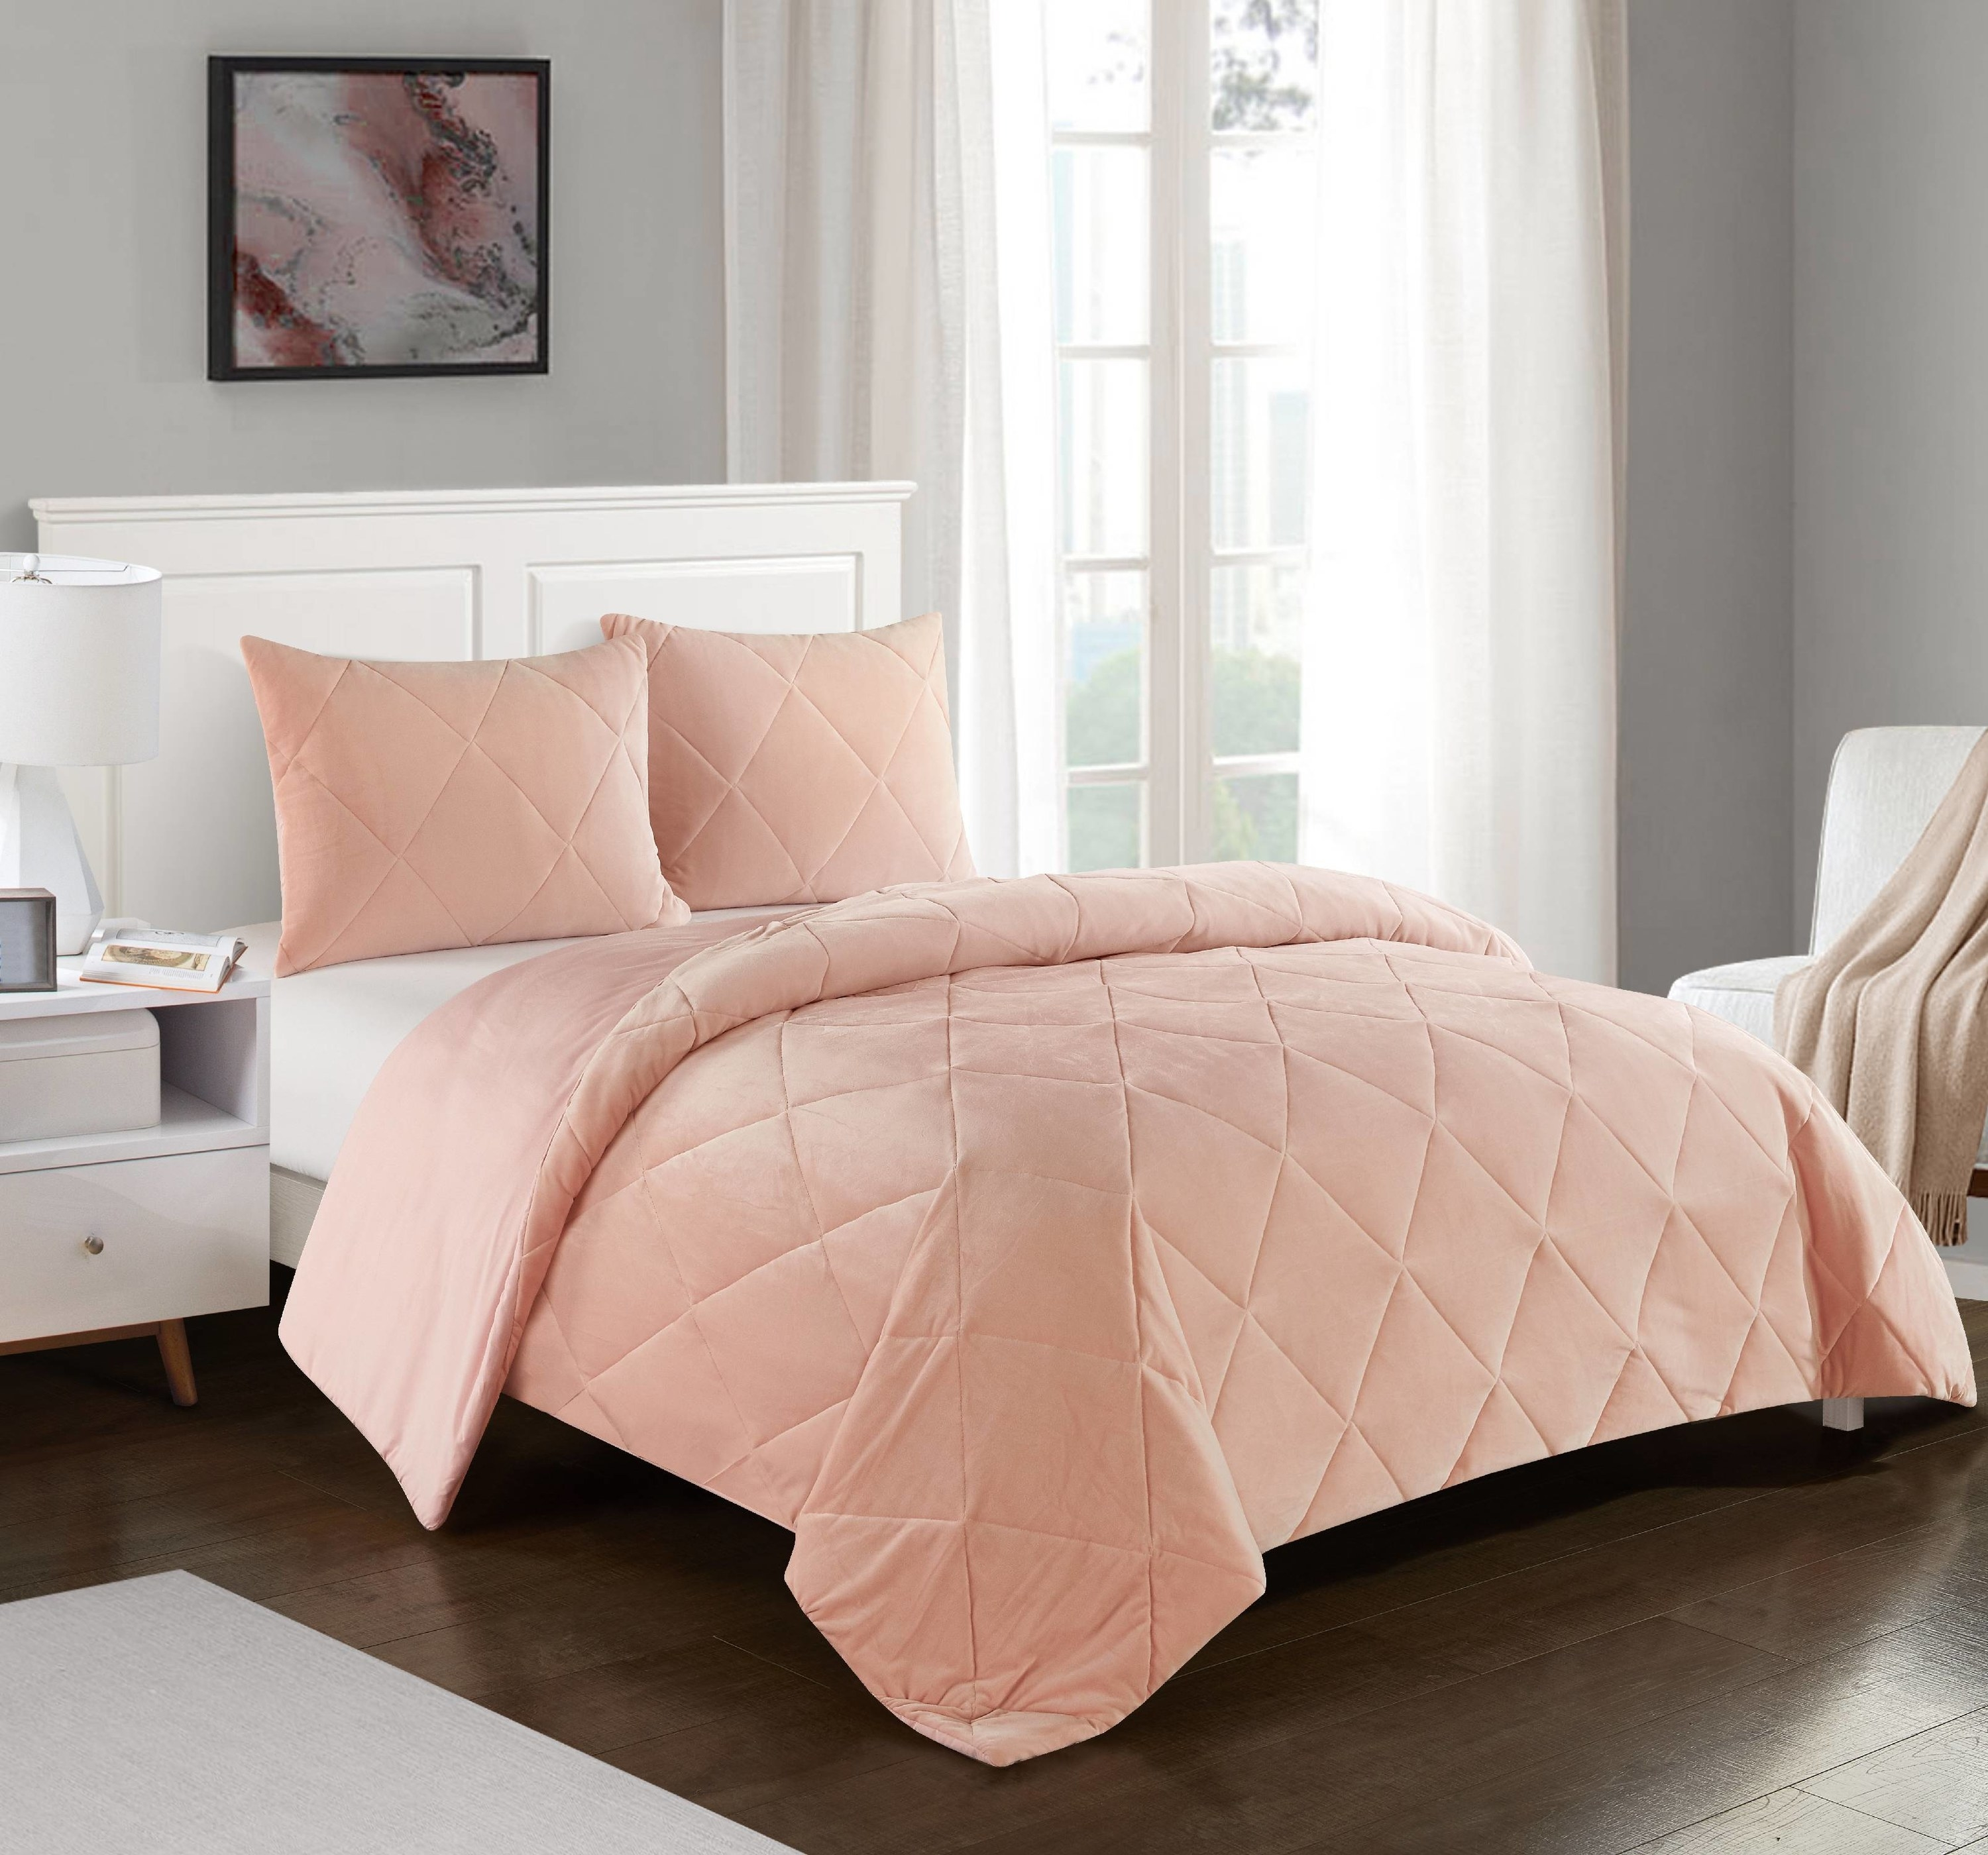 pink comforter and shams on a bed